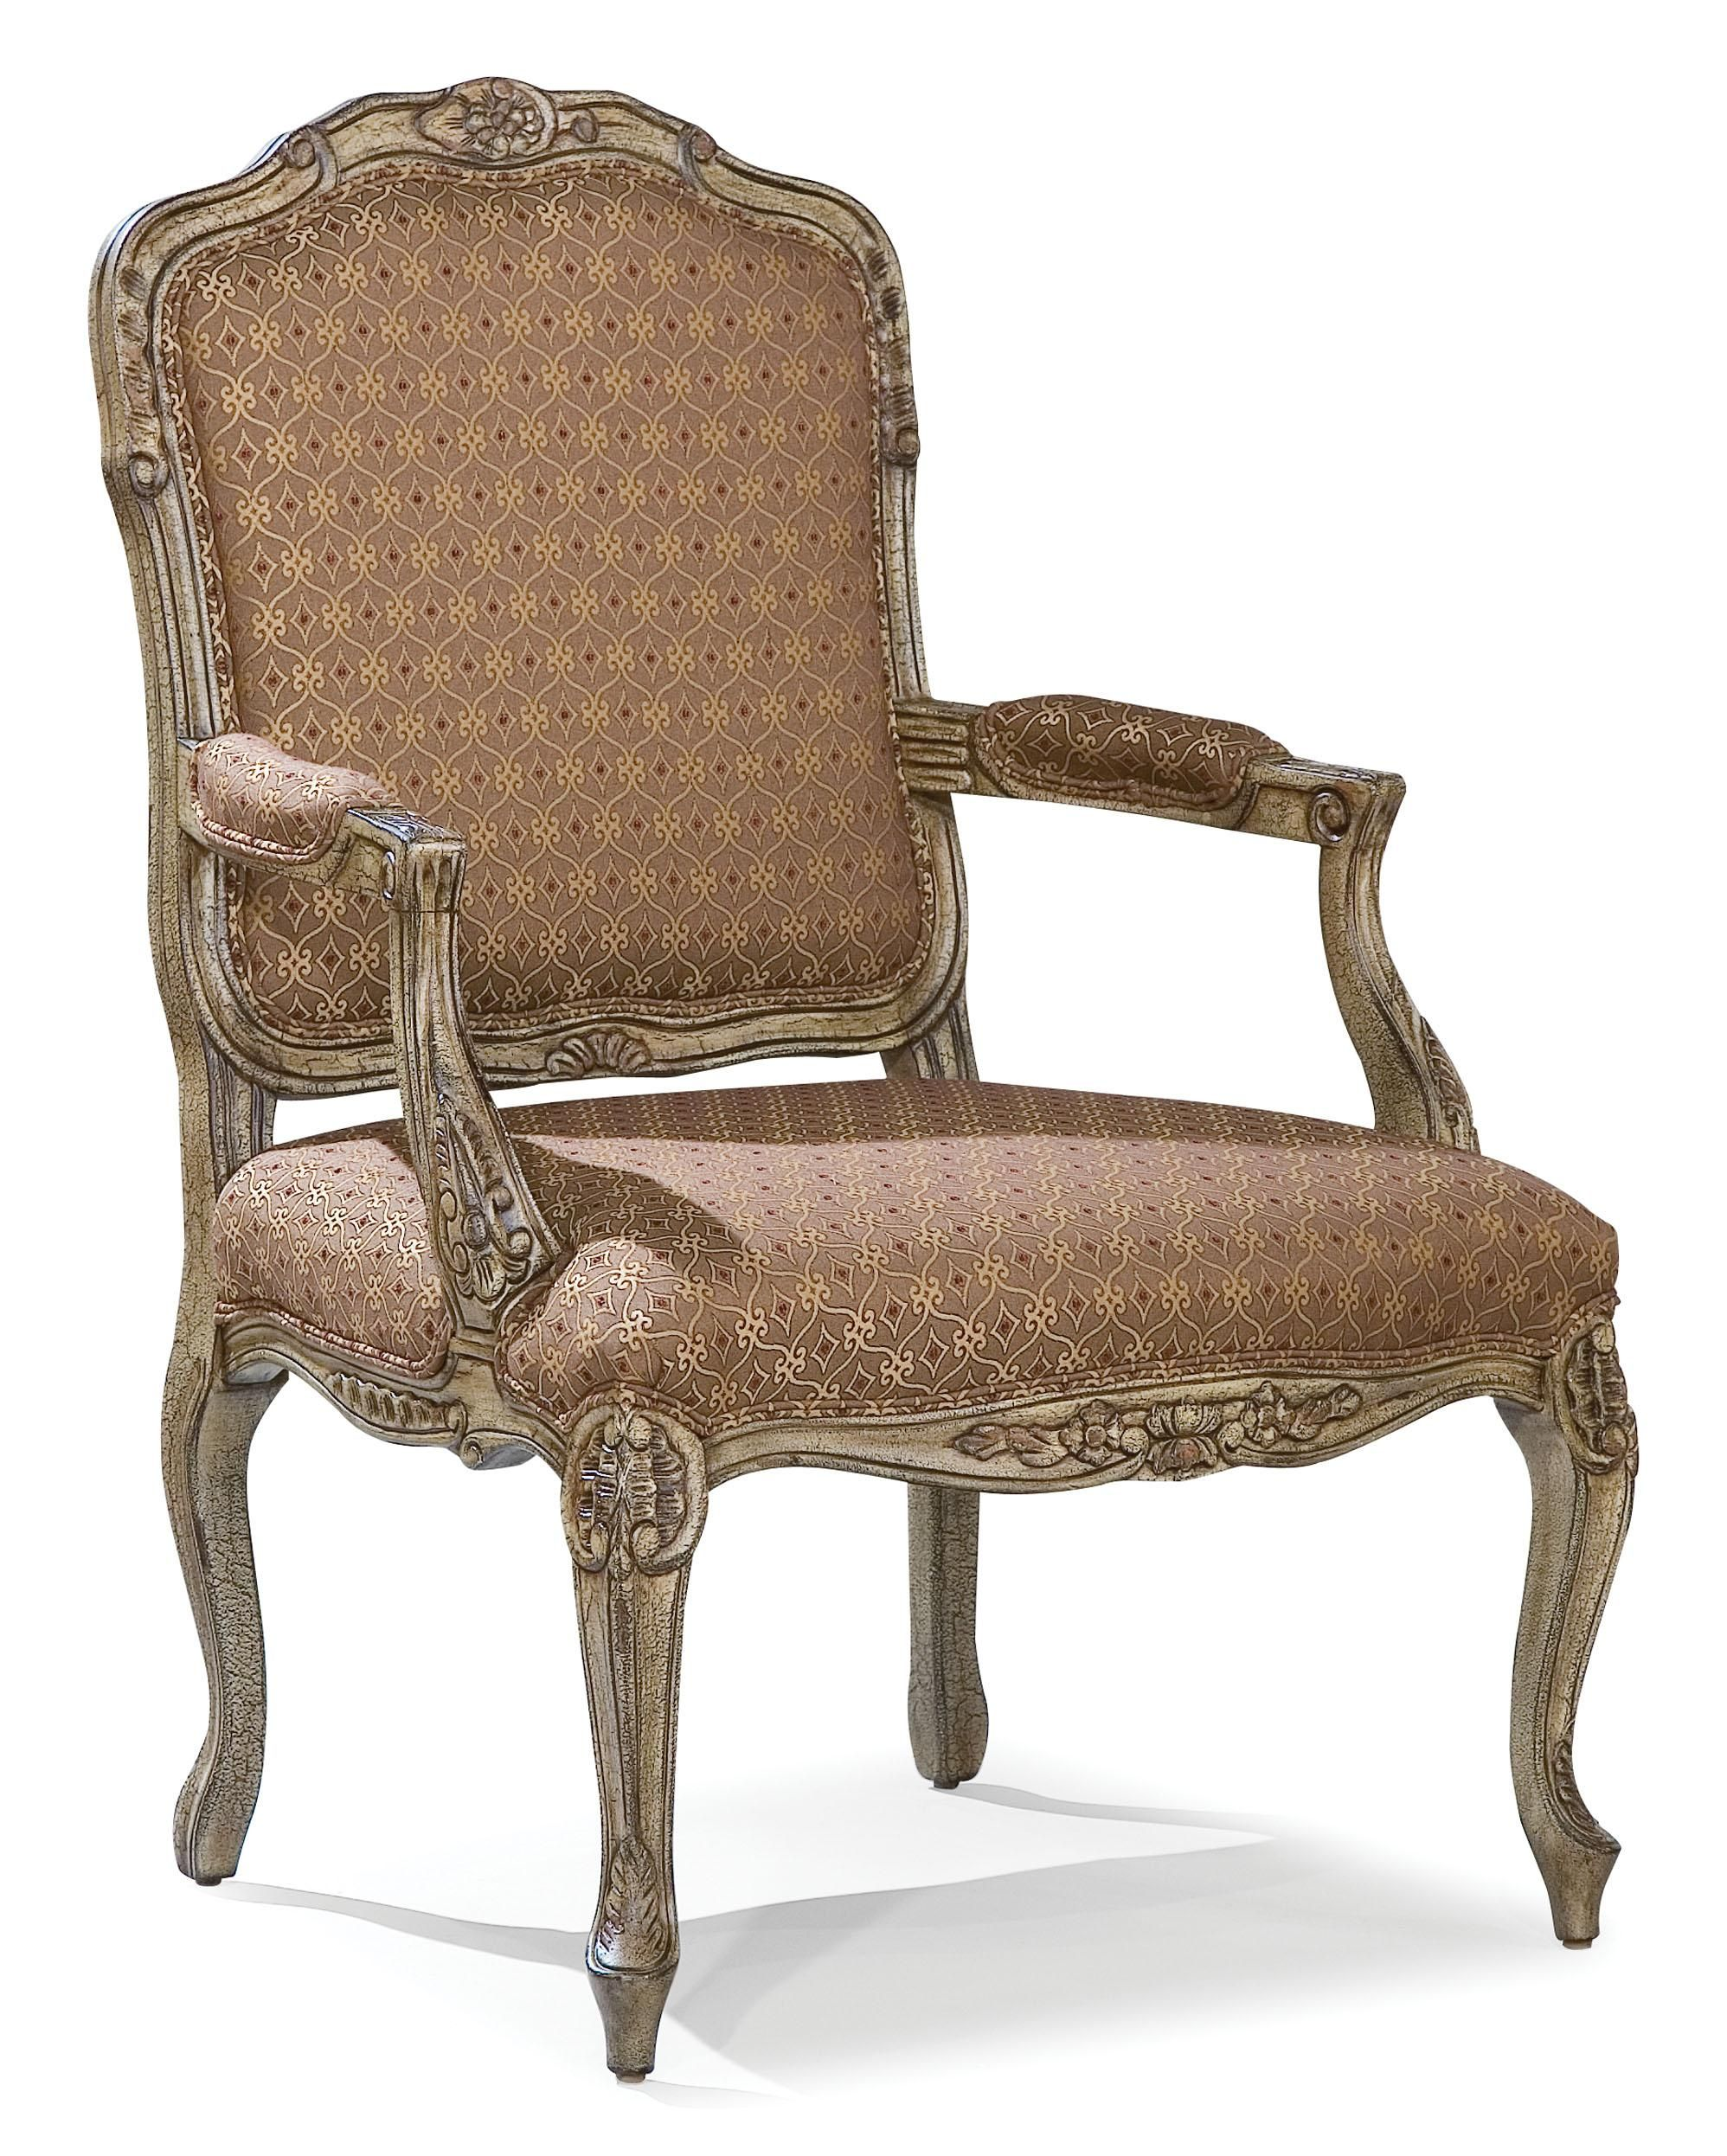 Fairfield Chairs Chairs Intricately Carved Accent Chair By Fairfield Living Room